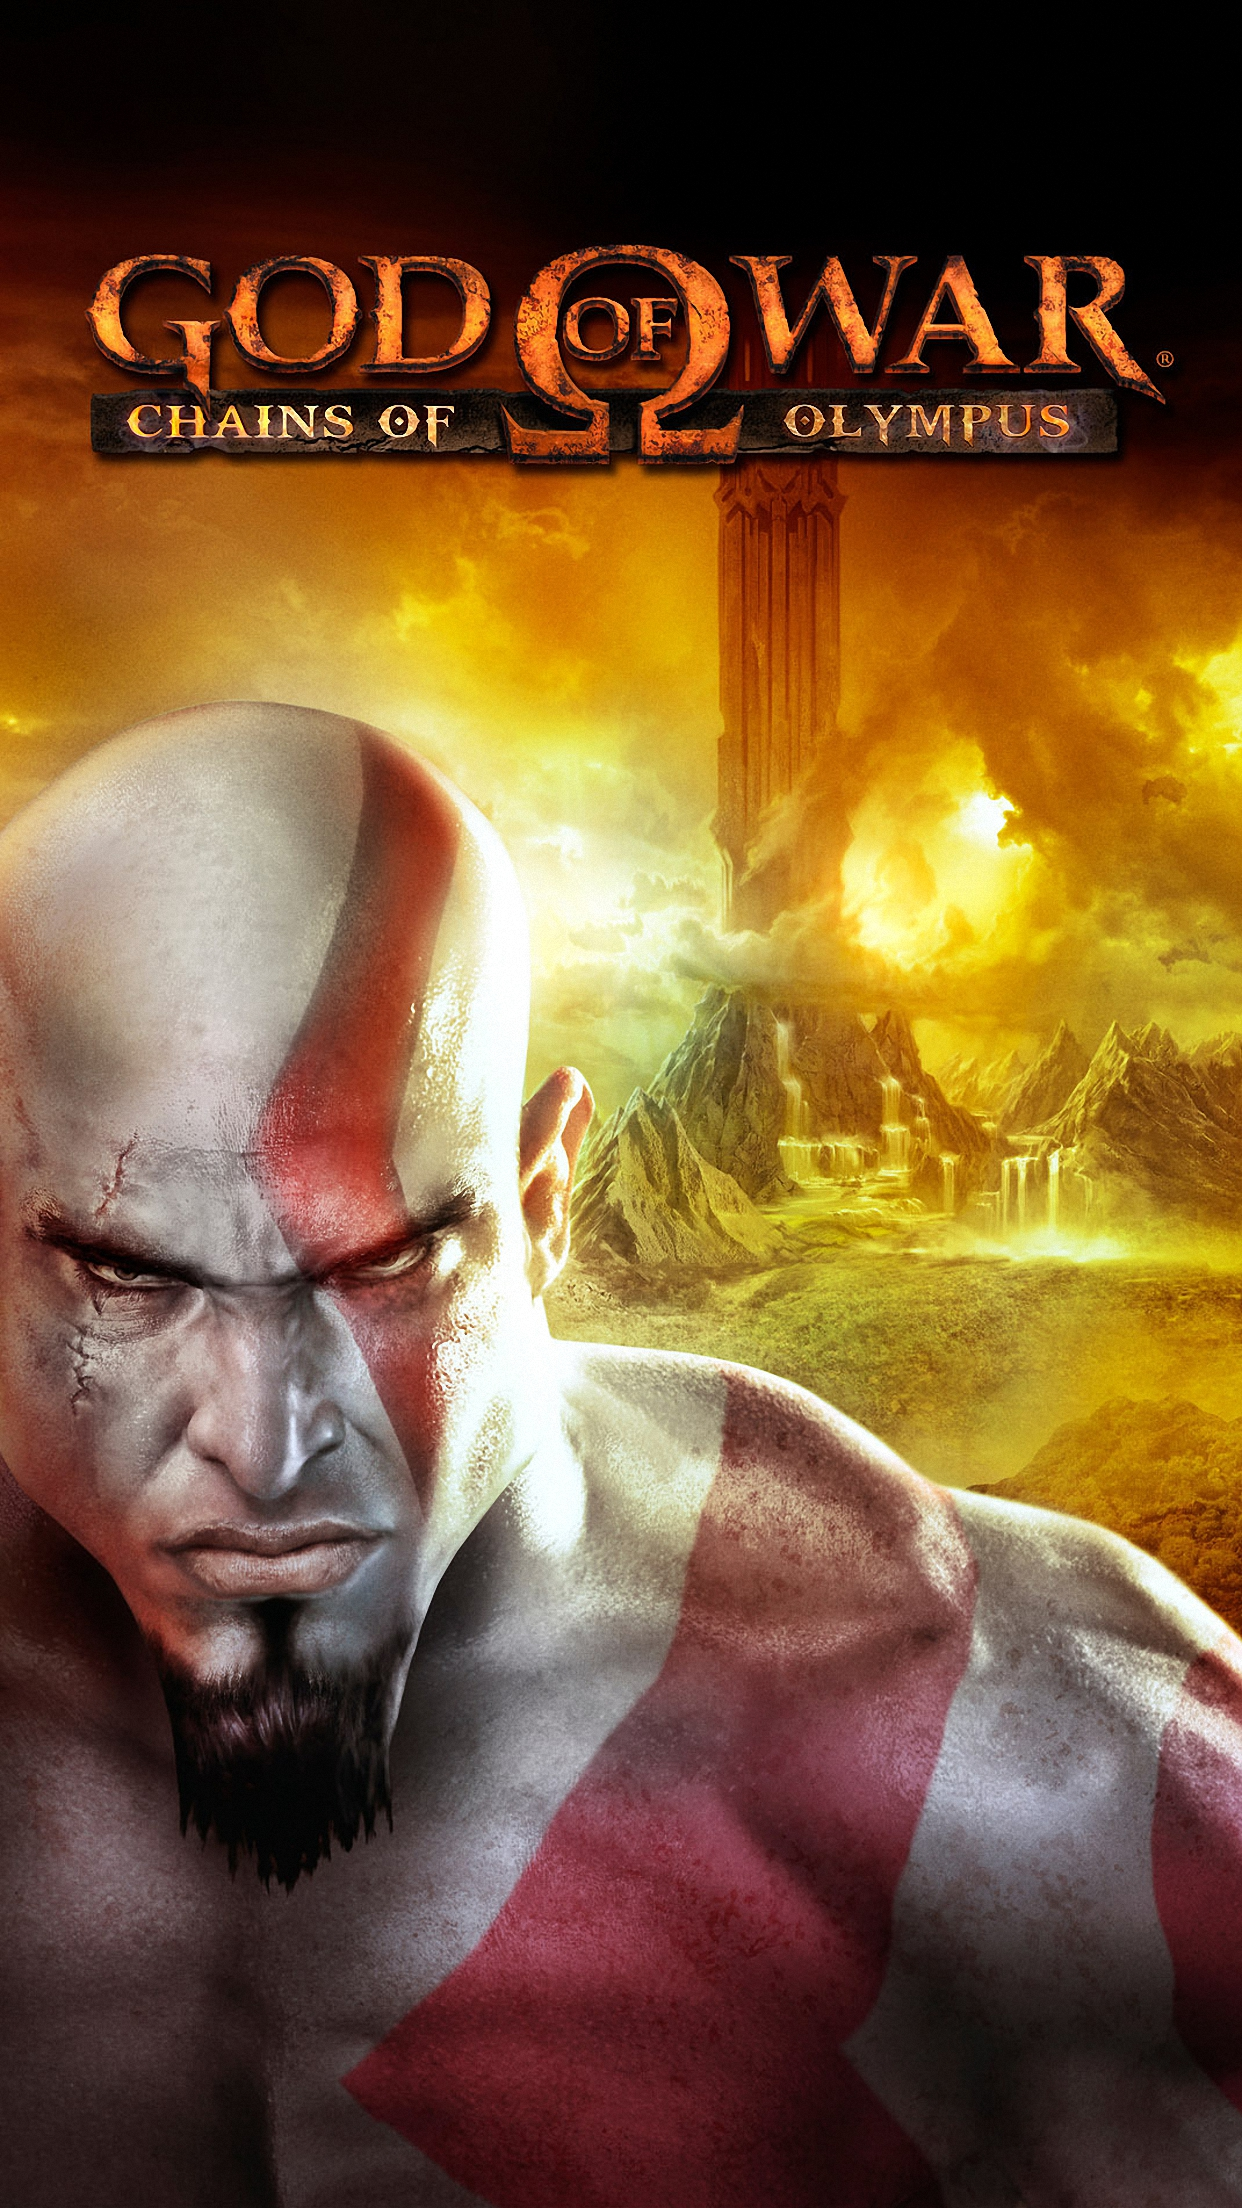 God of war chains of olympus wallpaper